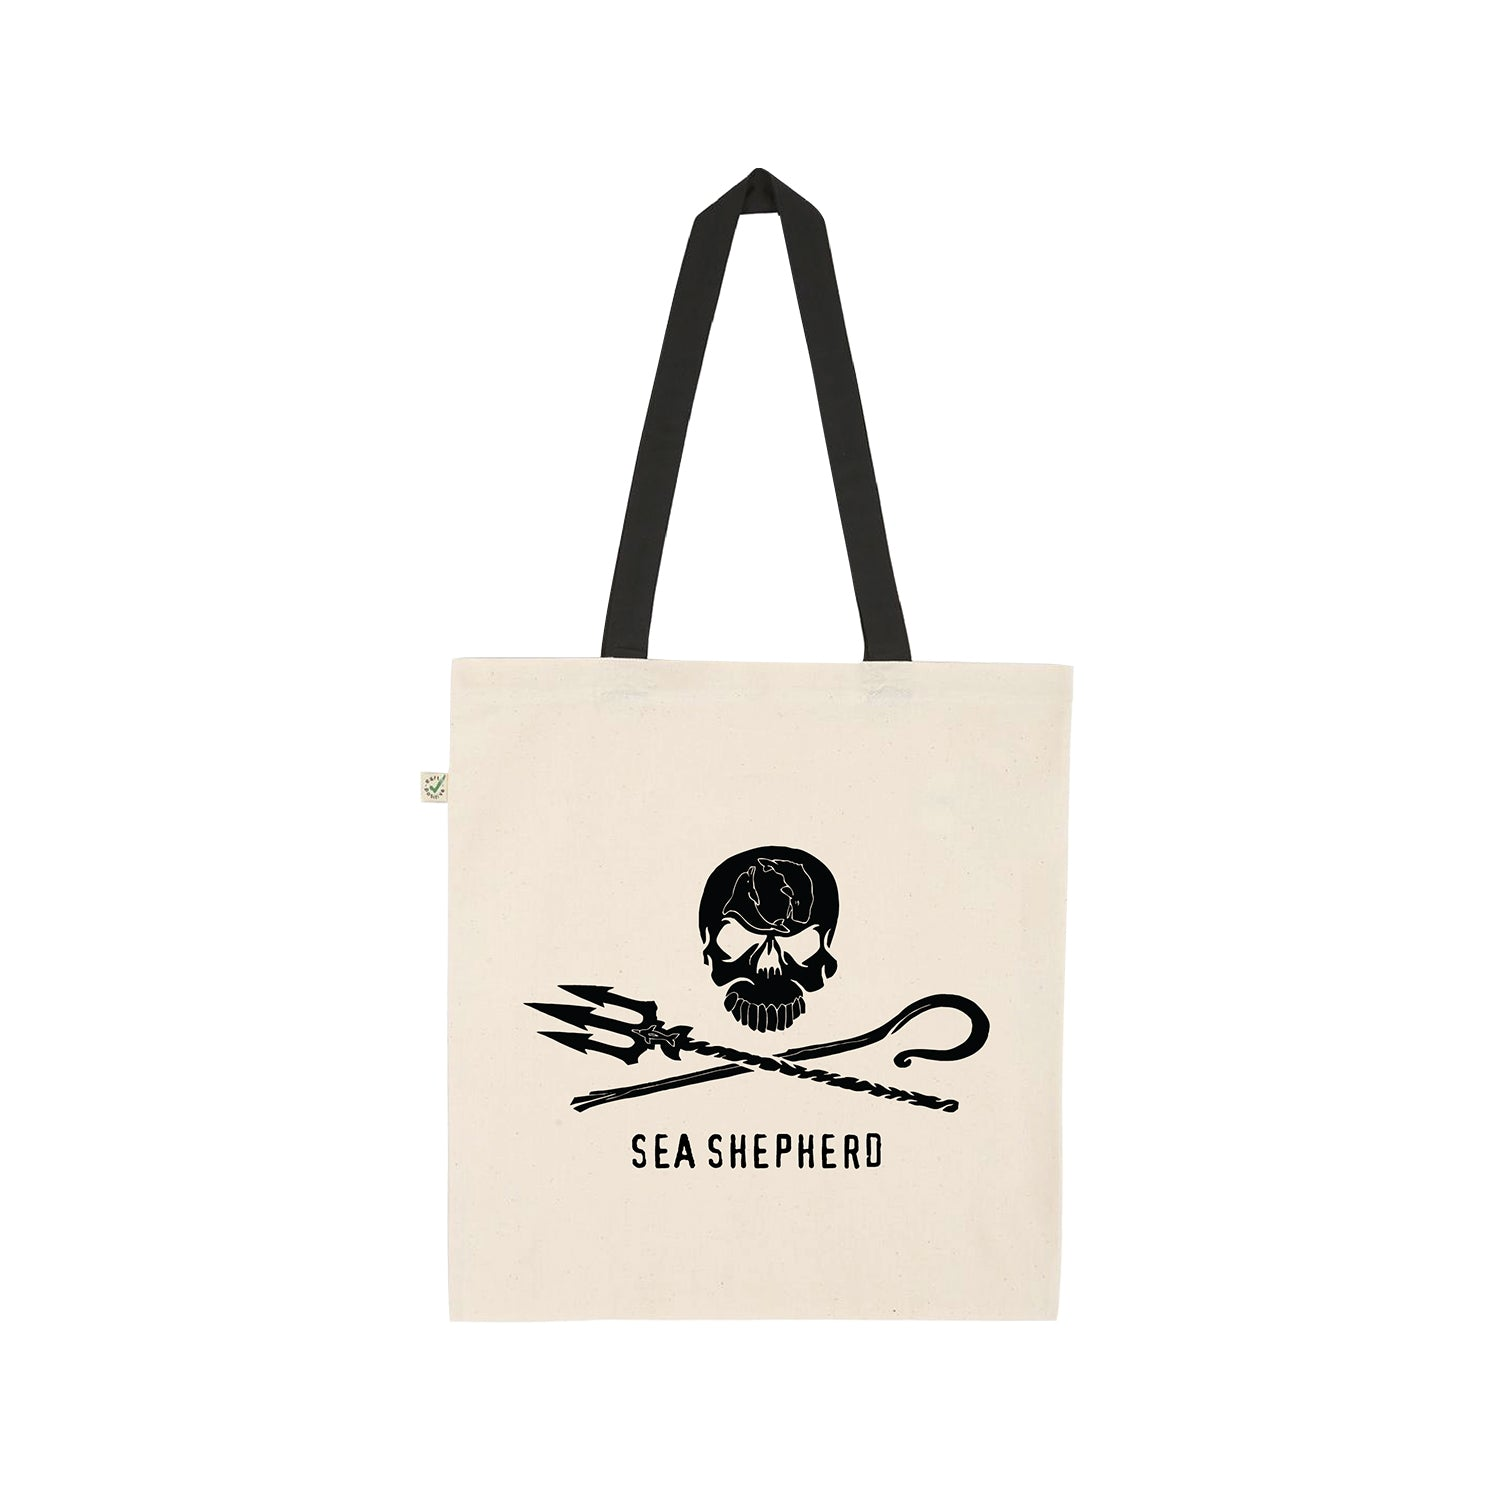 Sea Shepherd Tote Bag (Black Handles)